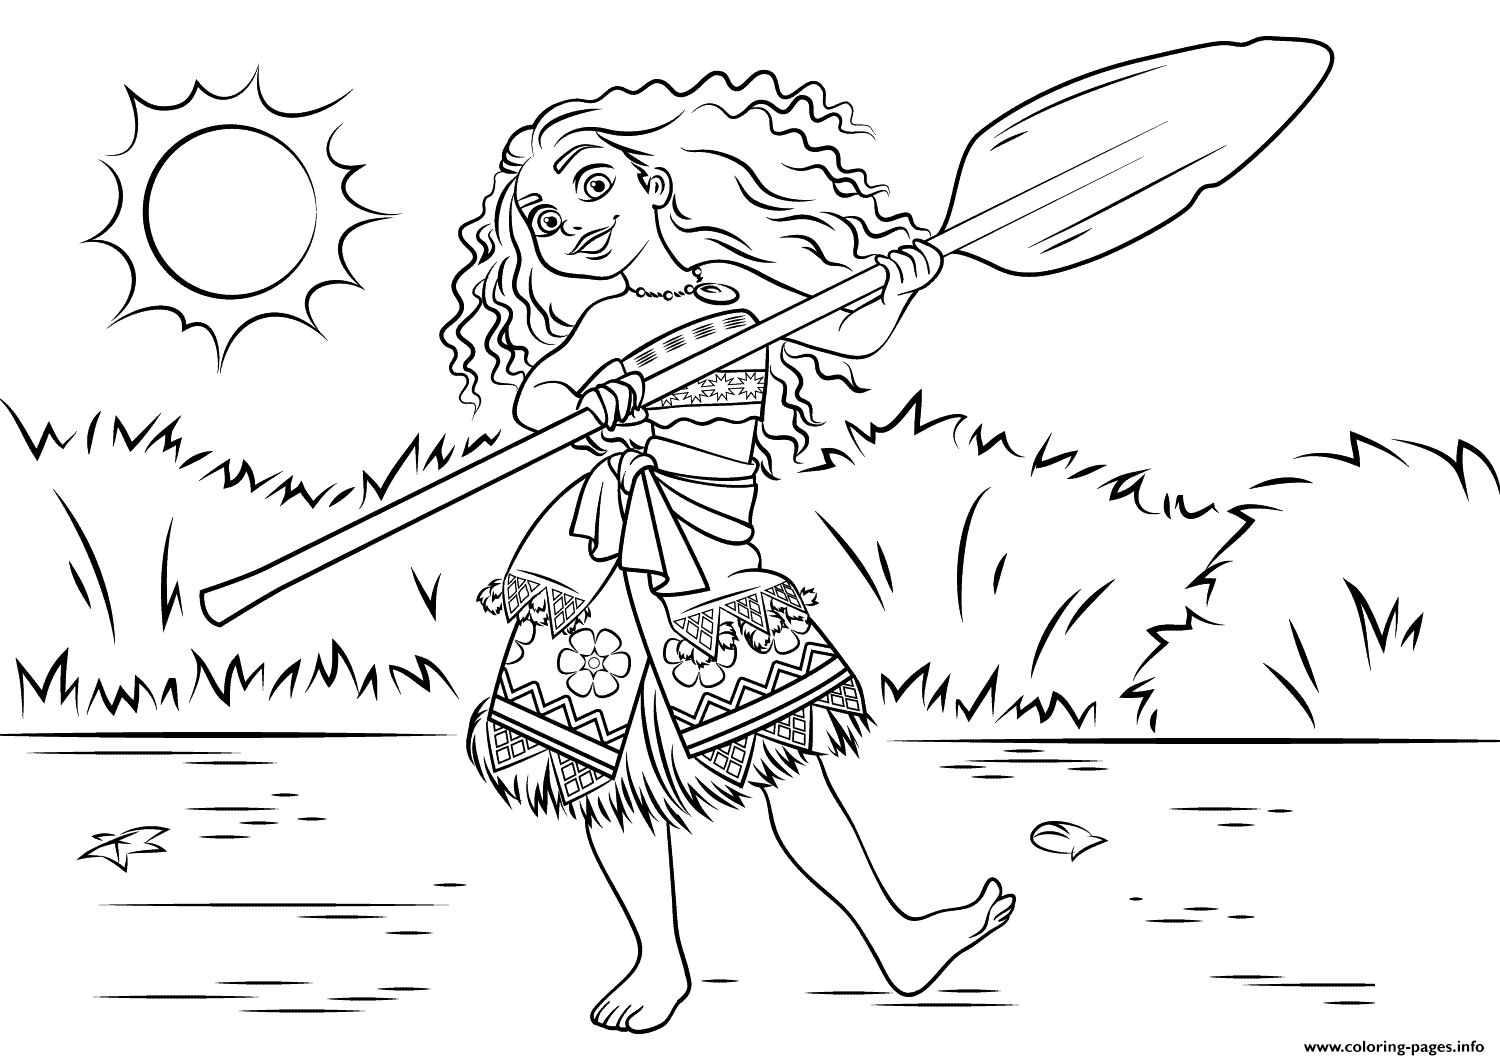 moana color pages - princess moana waialiki disney printable coloring pages book